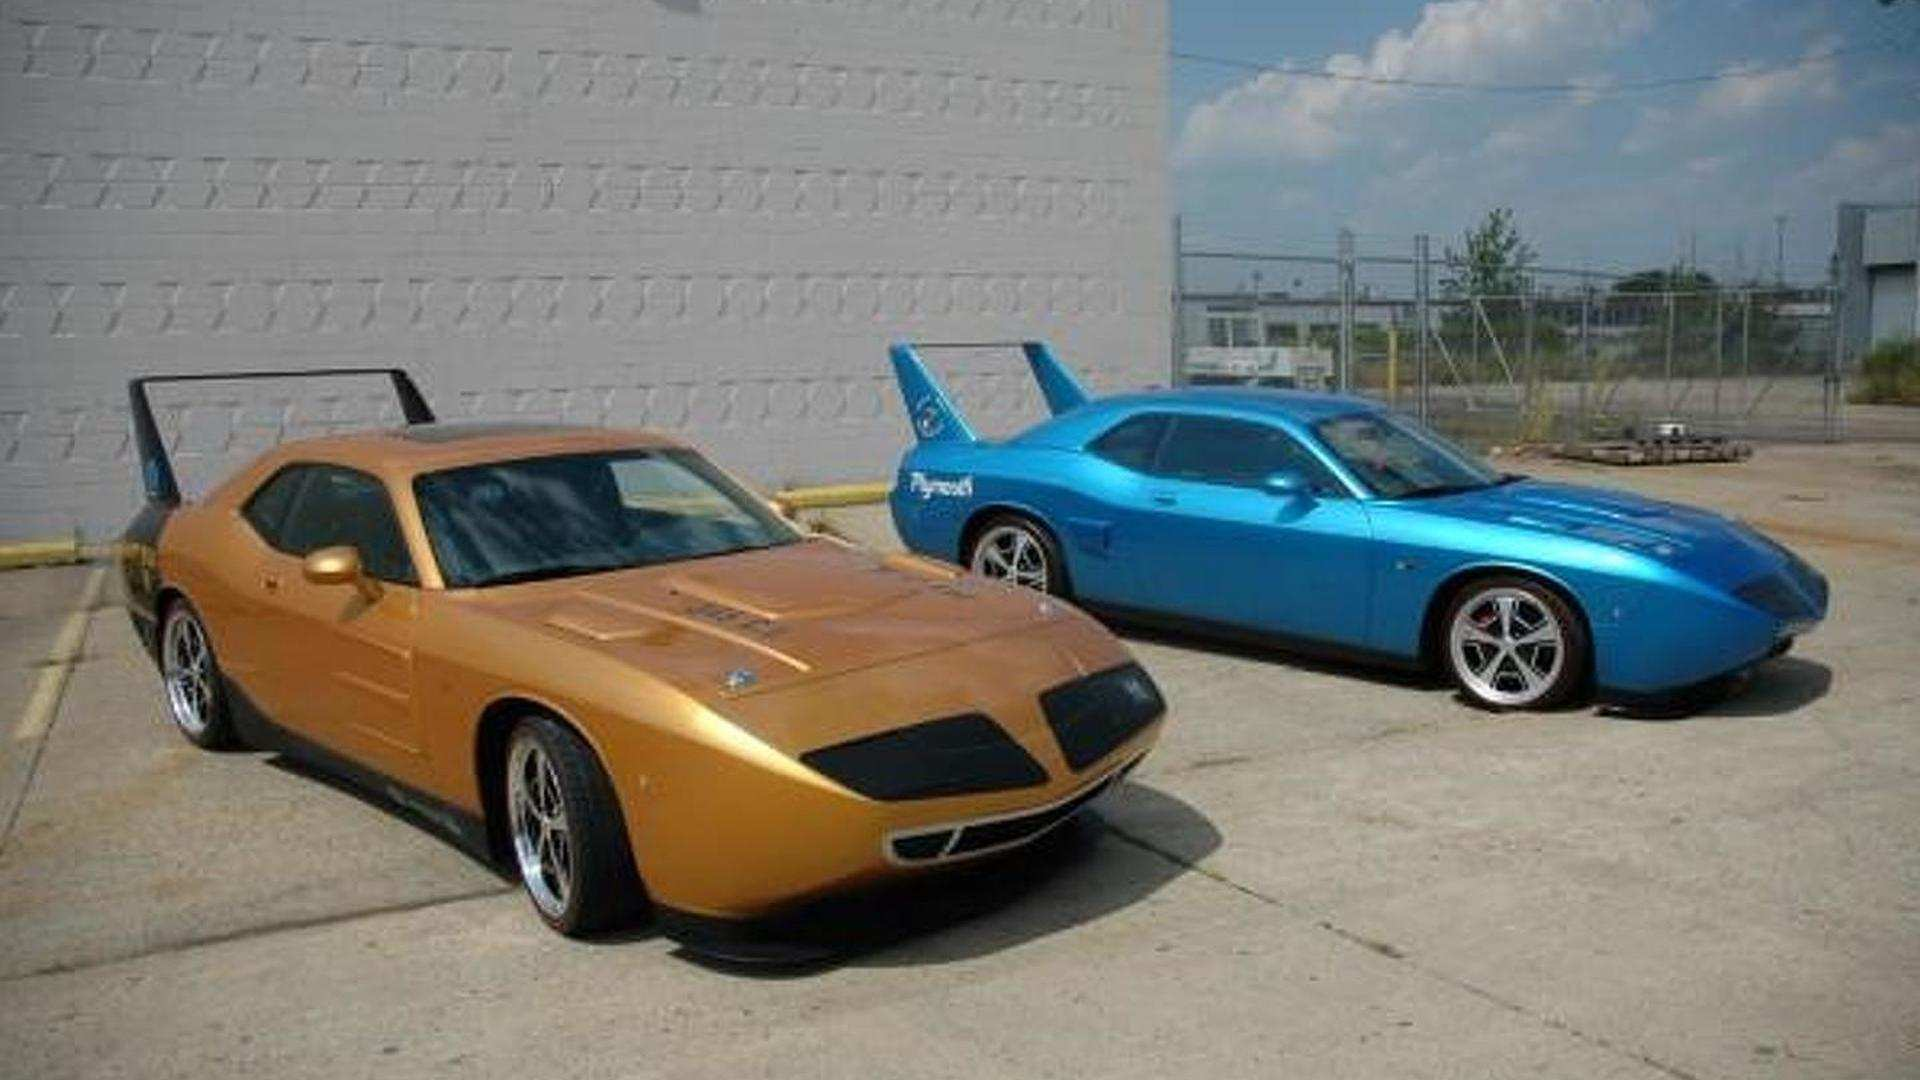 61 All New 2020 Dodge Superbird Review with 2020 Dodge Superbird